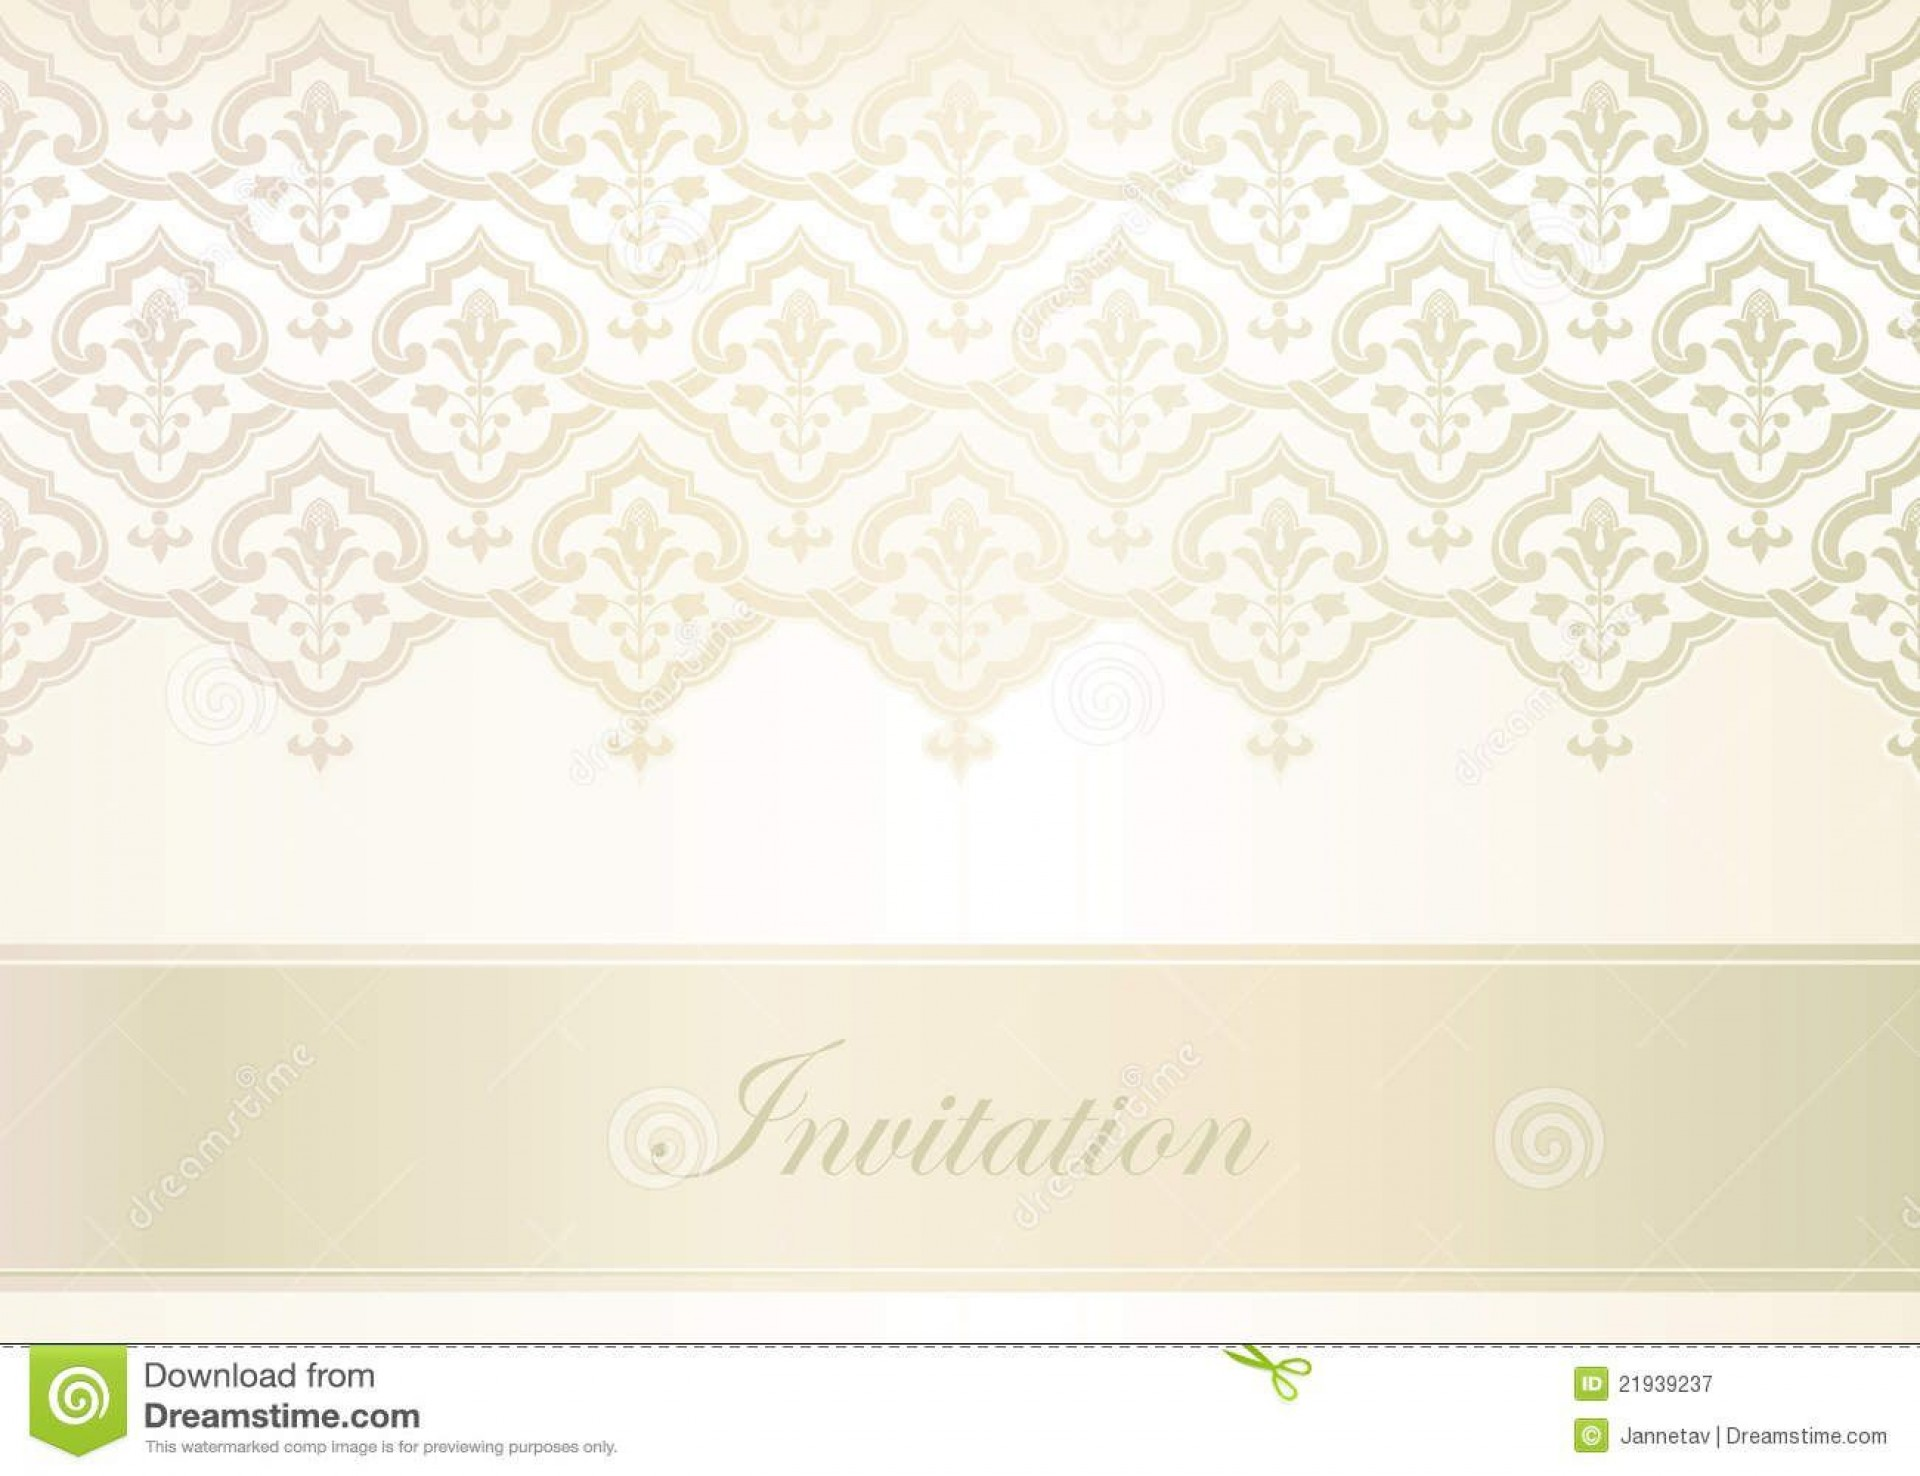 009 Astounding Free Download Invitation Card Format High Definition  Marriage In Word Psd Wedding1920